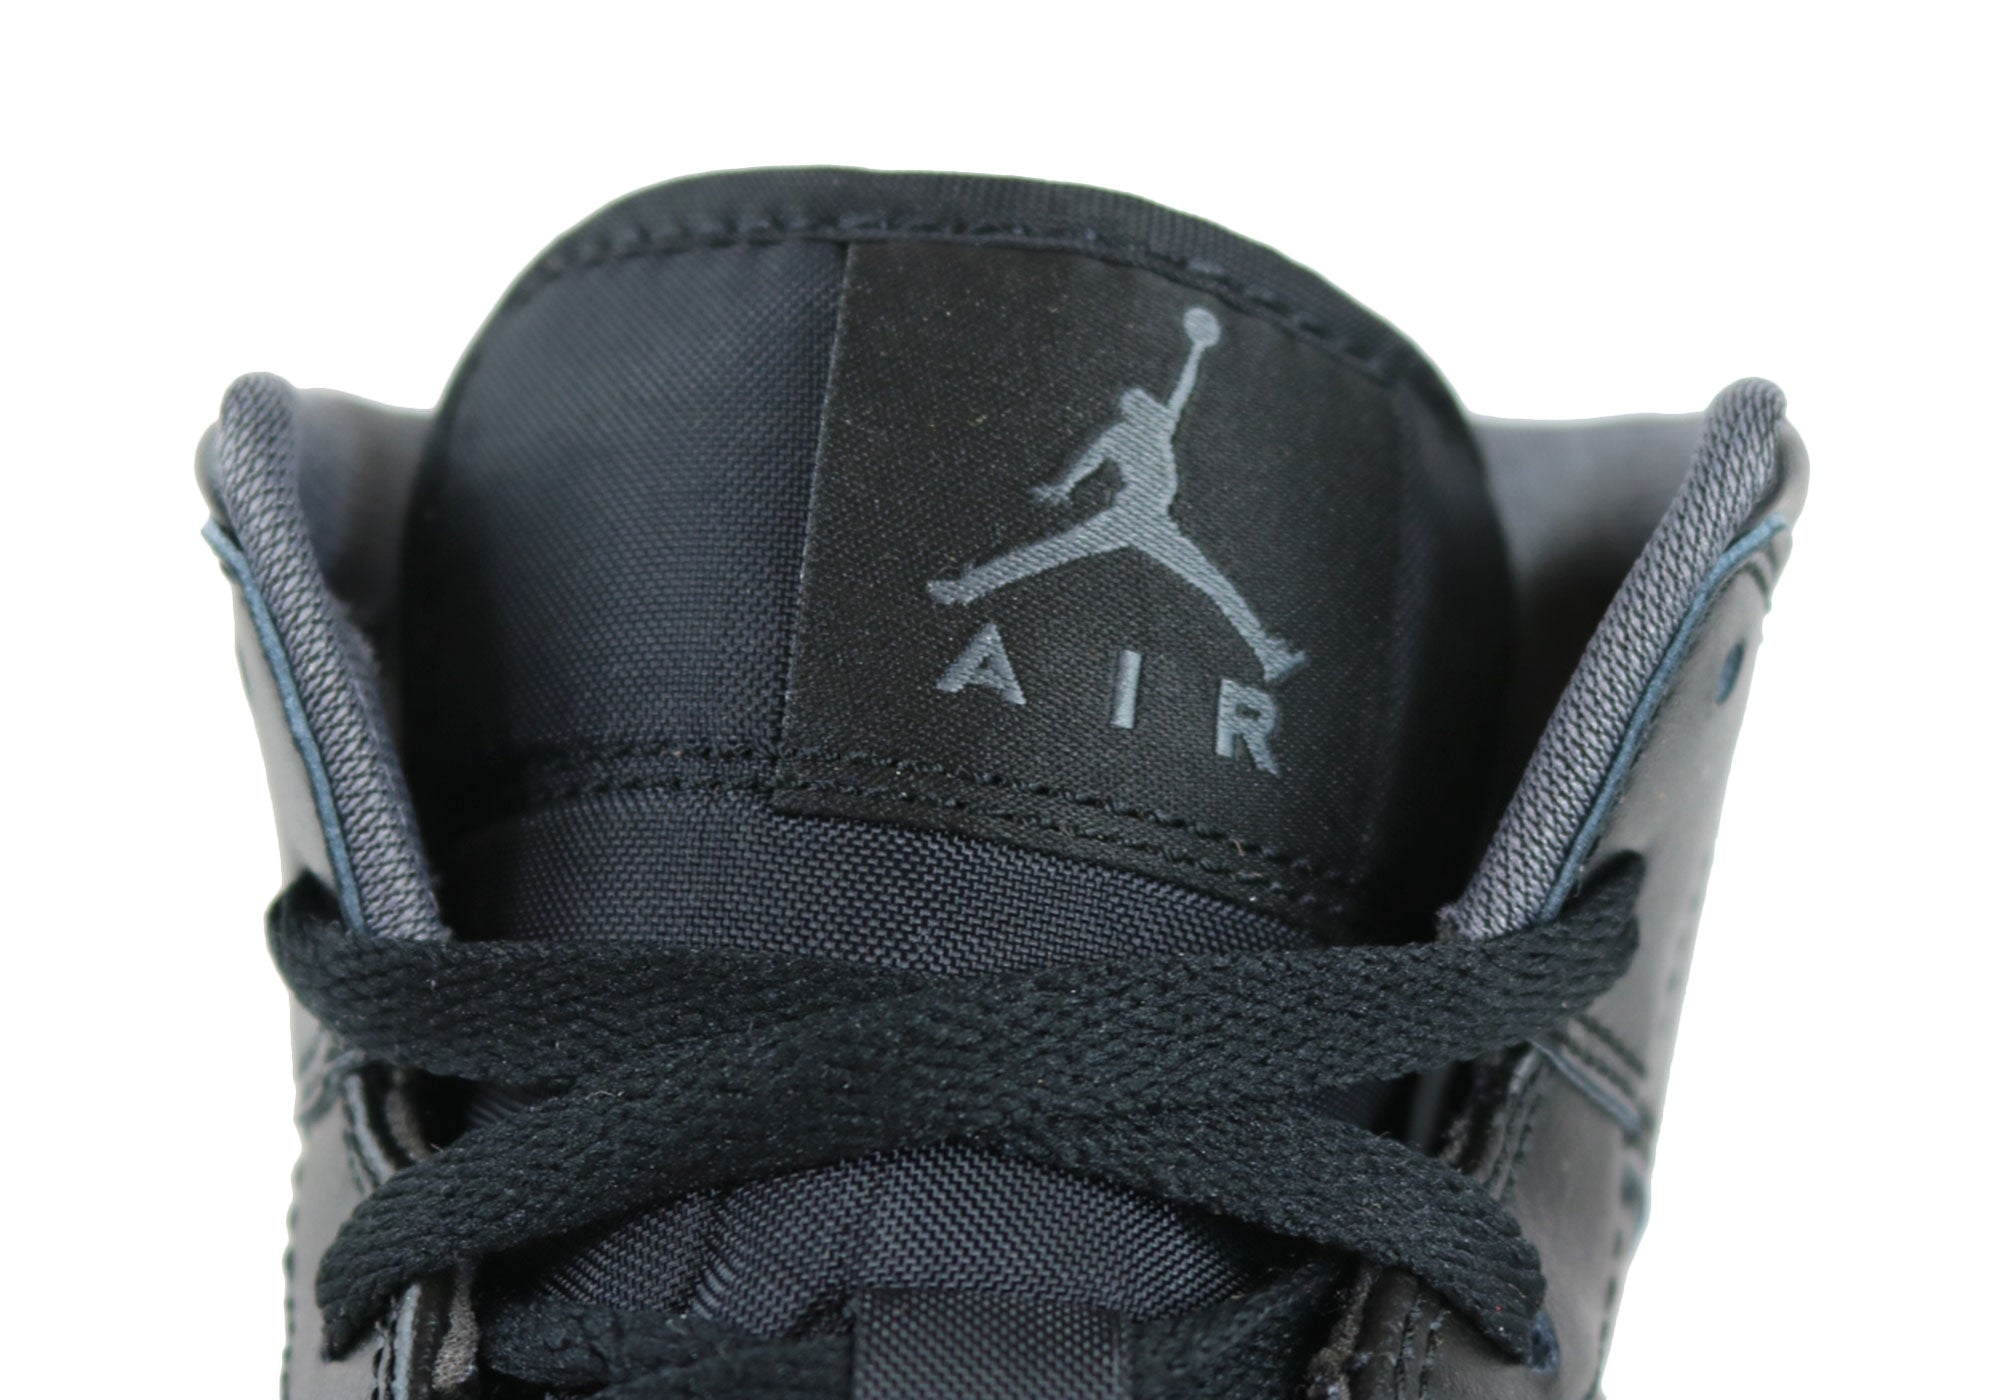 927b9a741cd7f1 NEW NIKE AIR JORDAN 1 MID LEATHER HI TOPS BASKETBALL SHOES